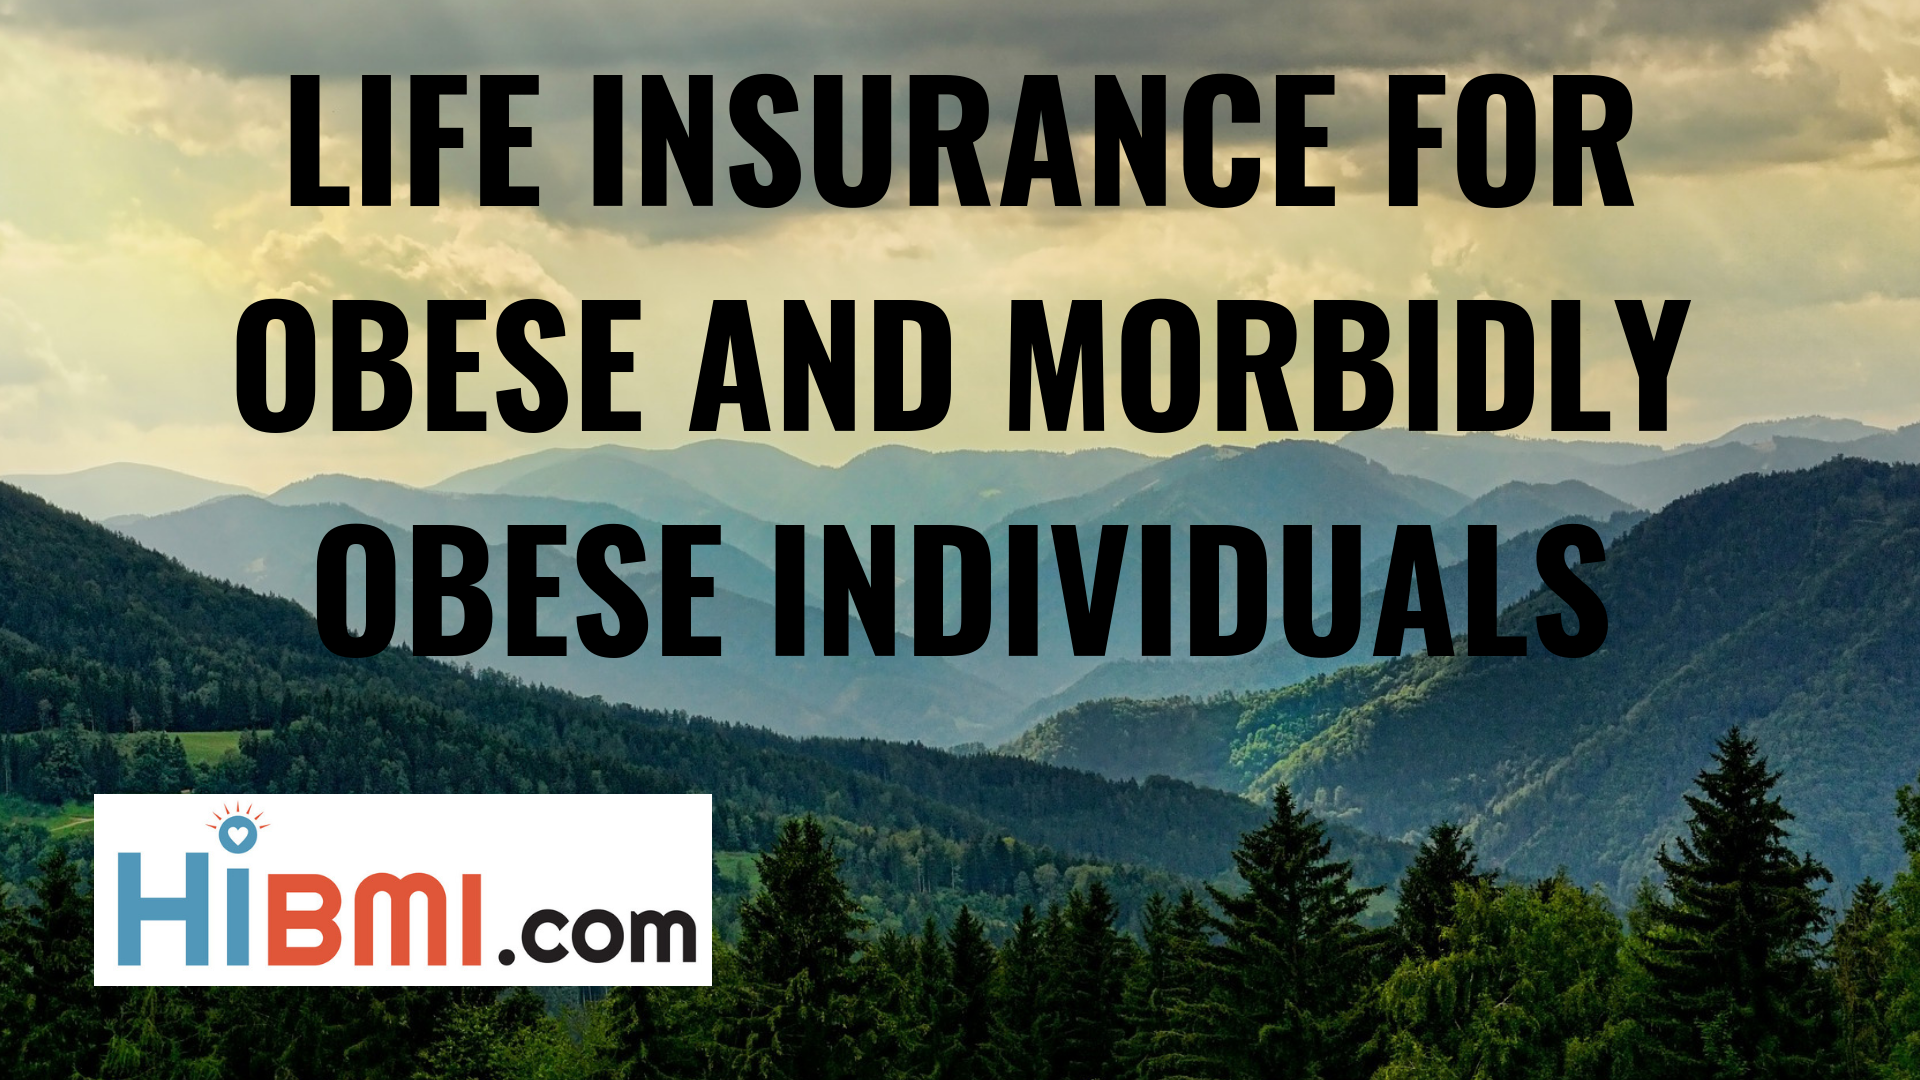 life insurance for obese and morbidly obese, life insurance approved, term life insurance, whole life insurance